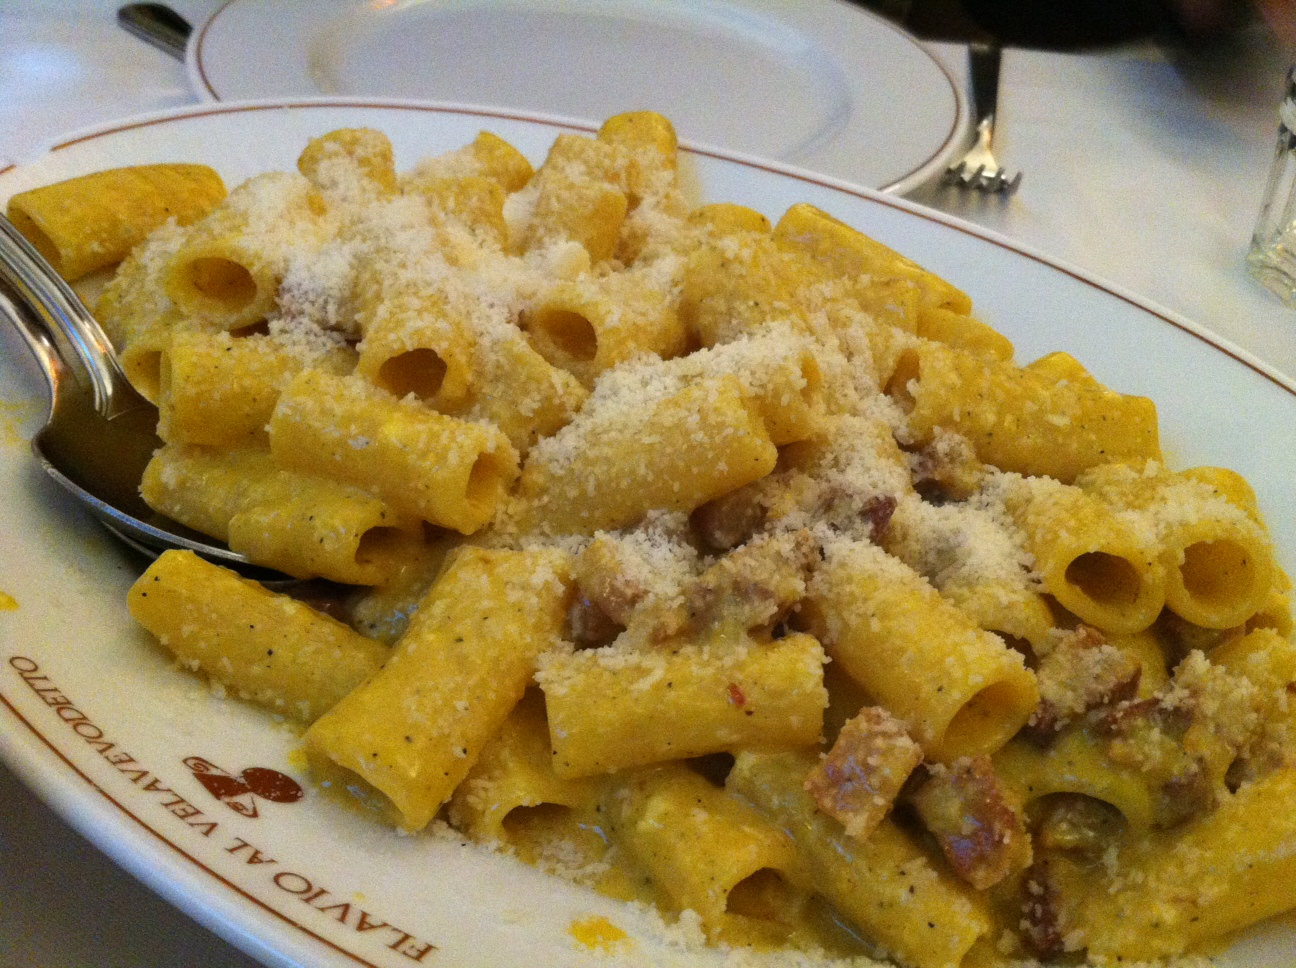 carbonara-rome-food-secrets.jpg